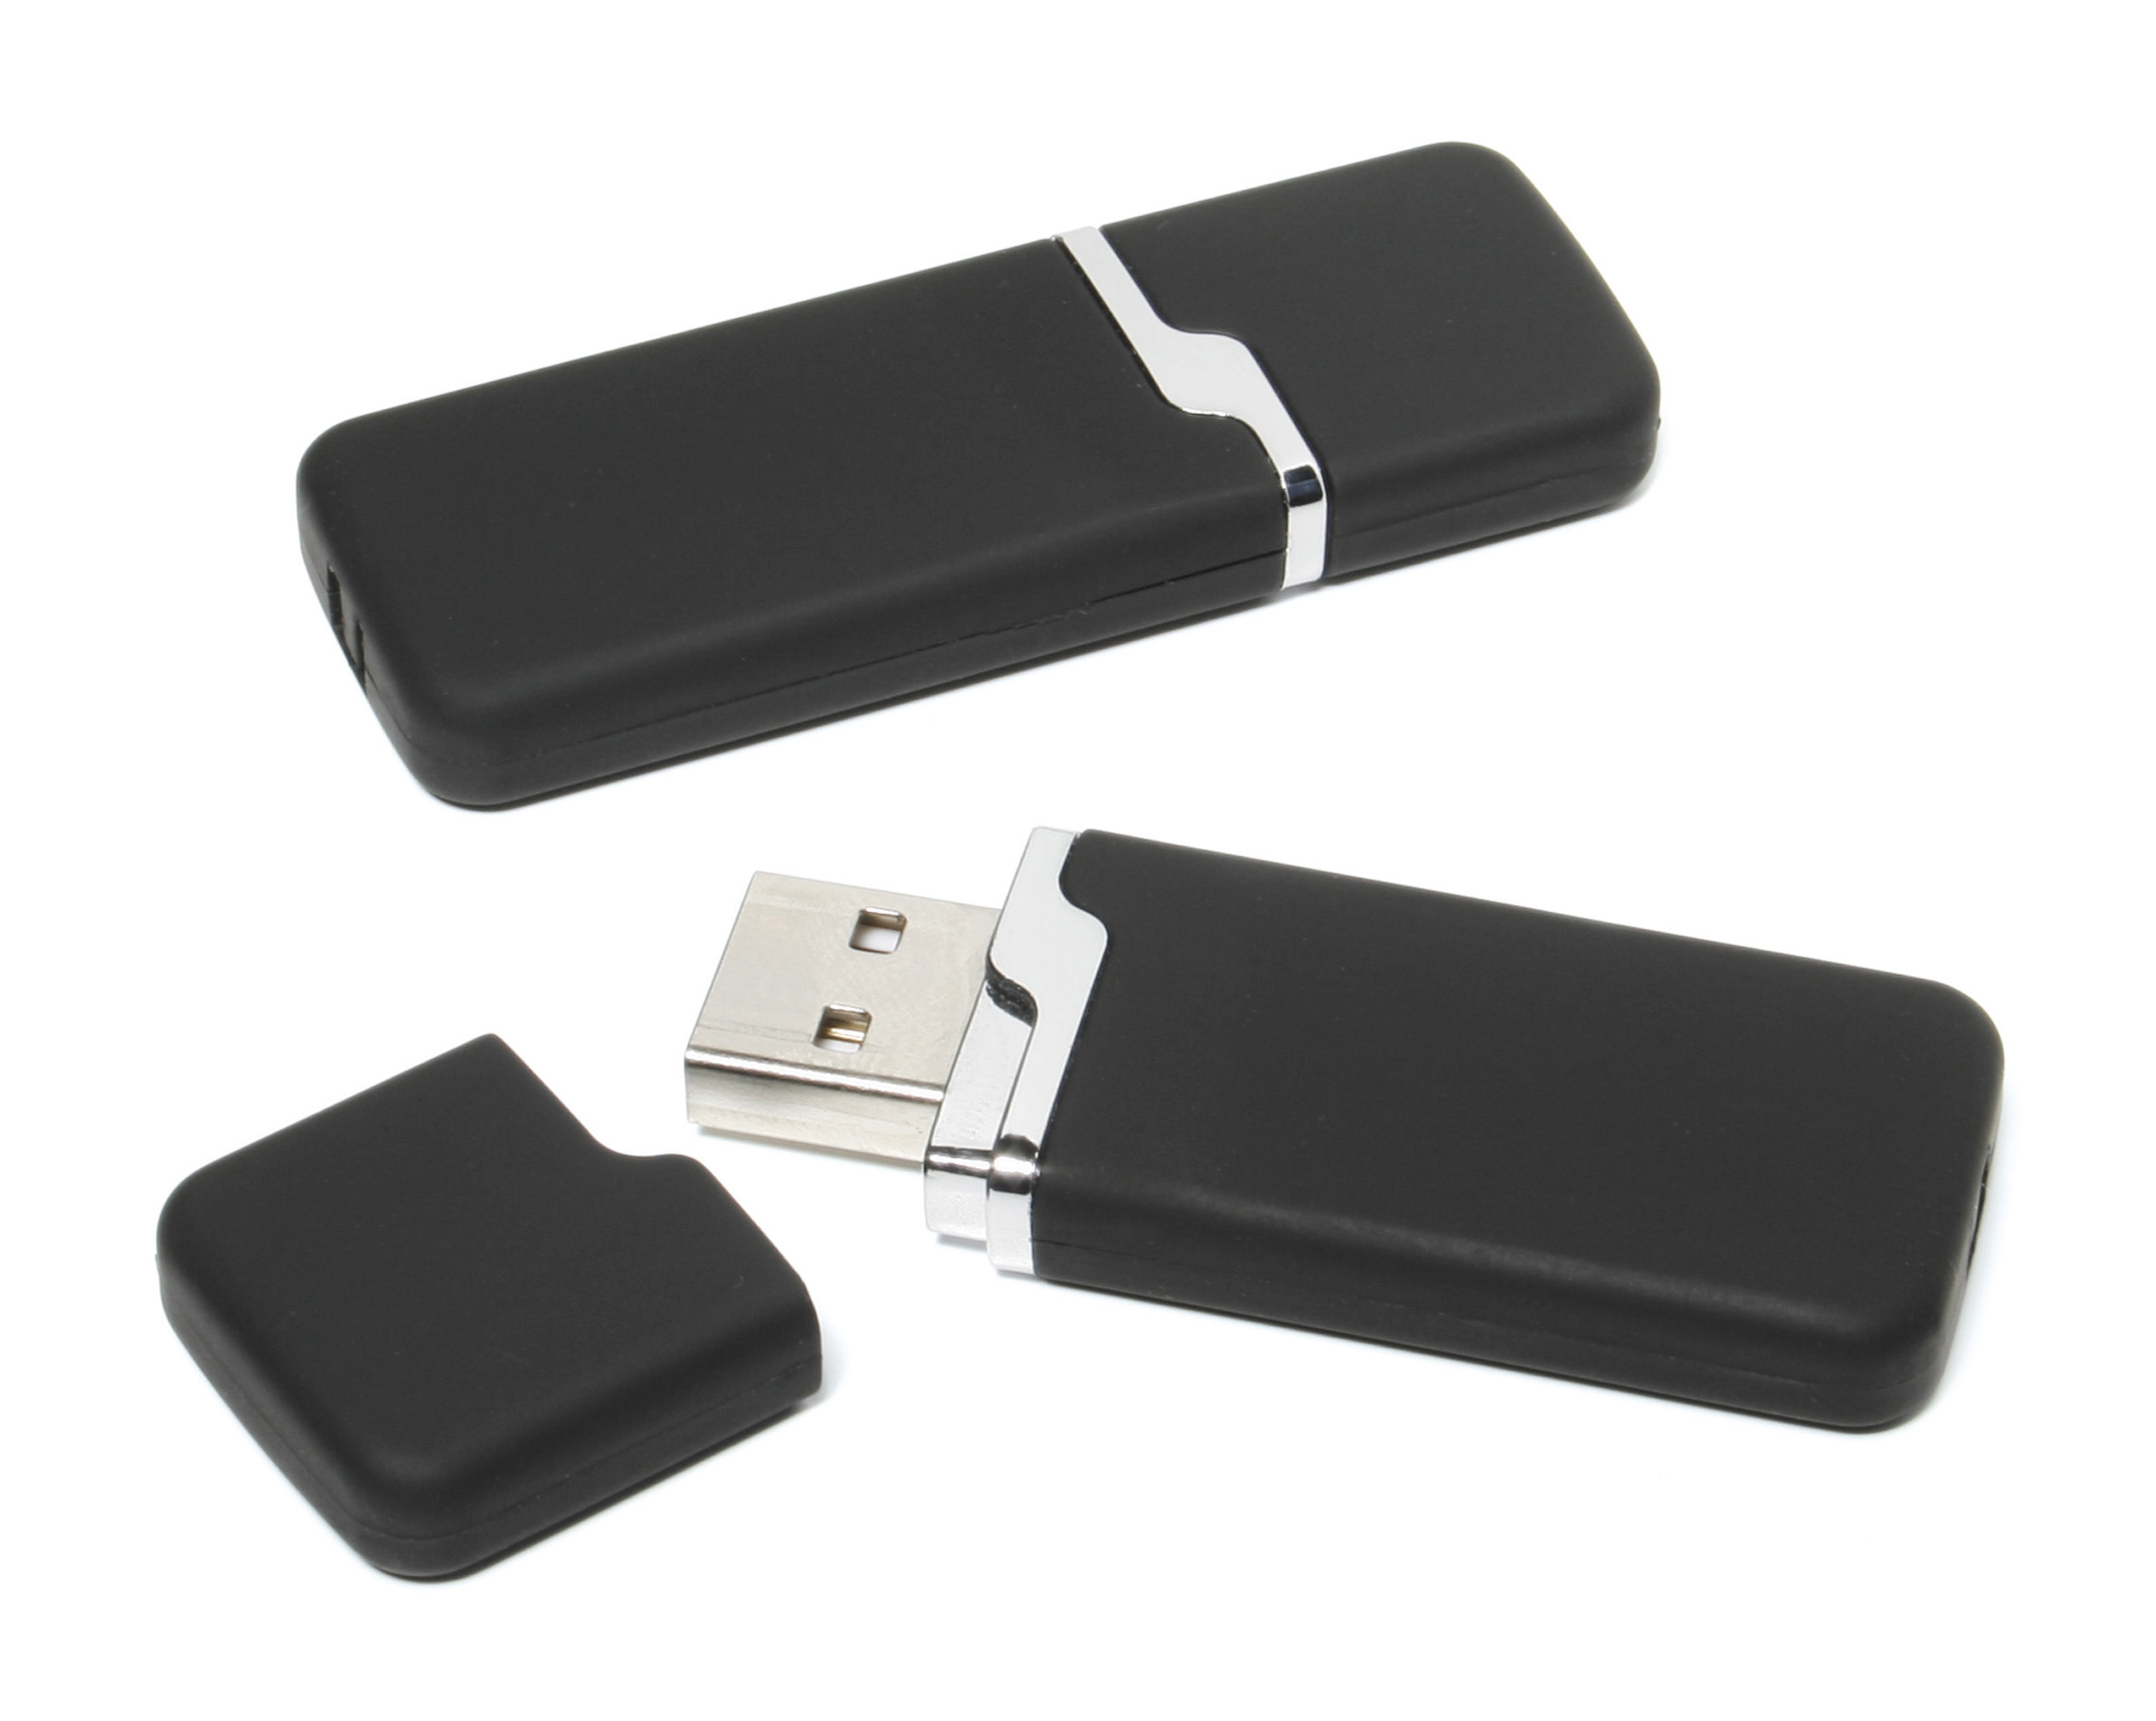 Rubber 4 USB FlashDrive